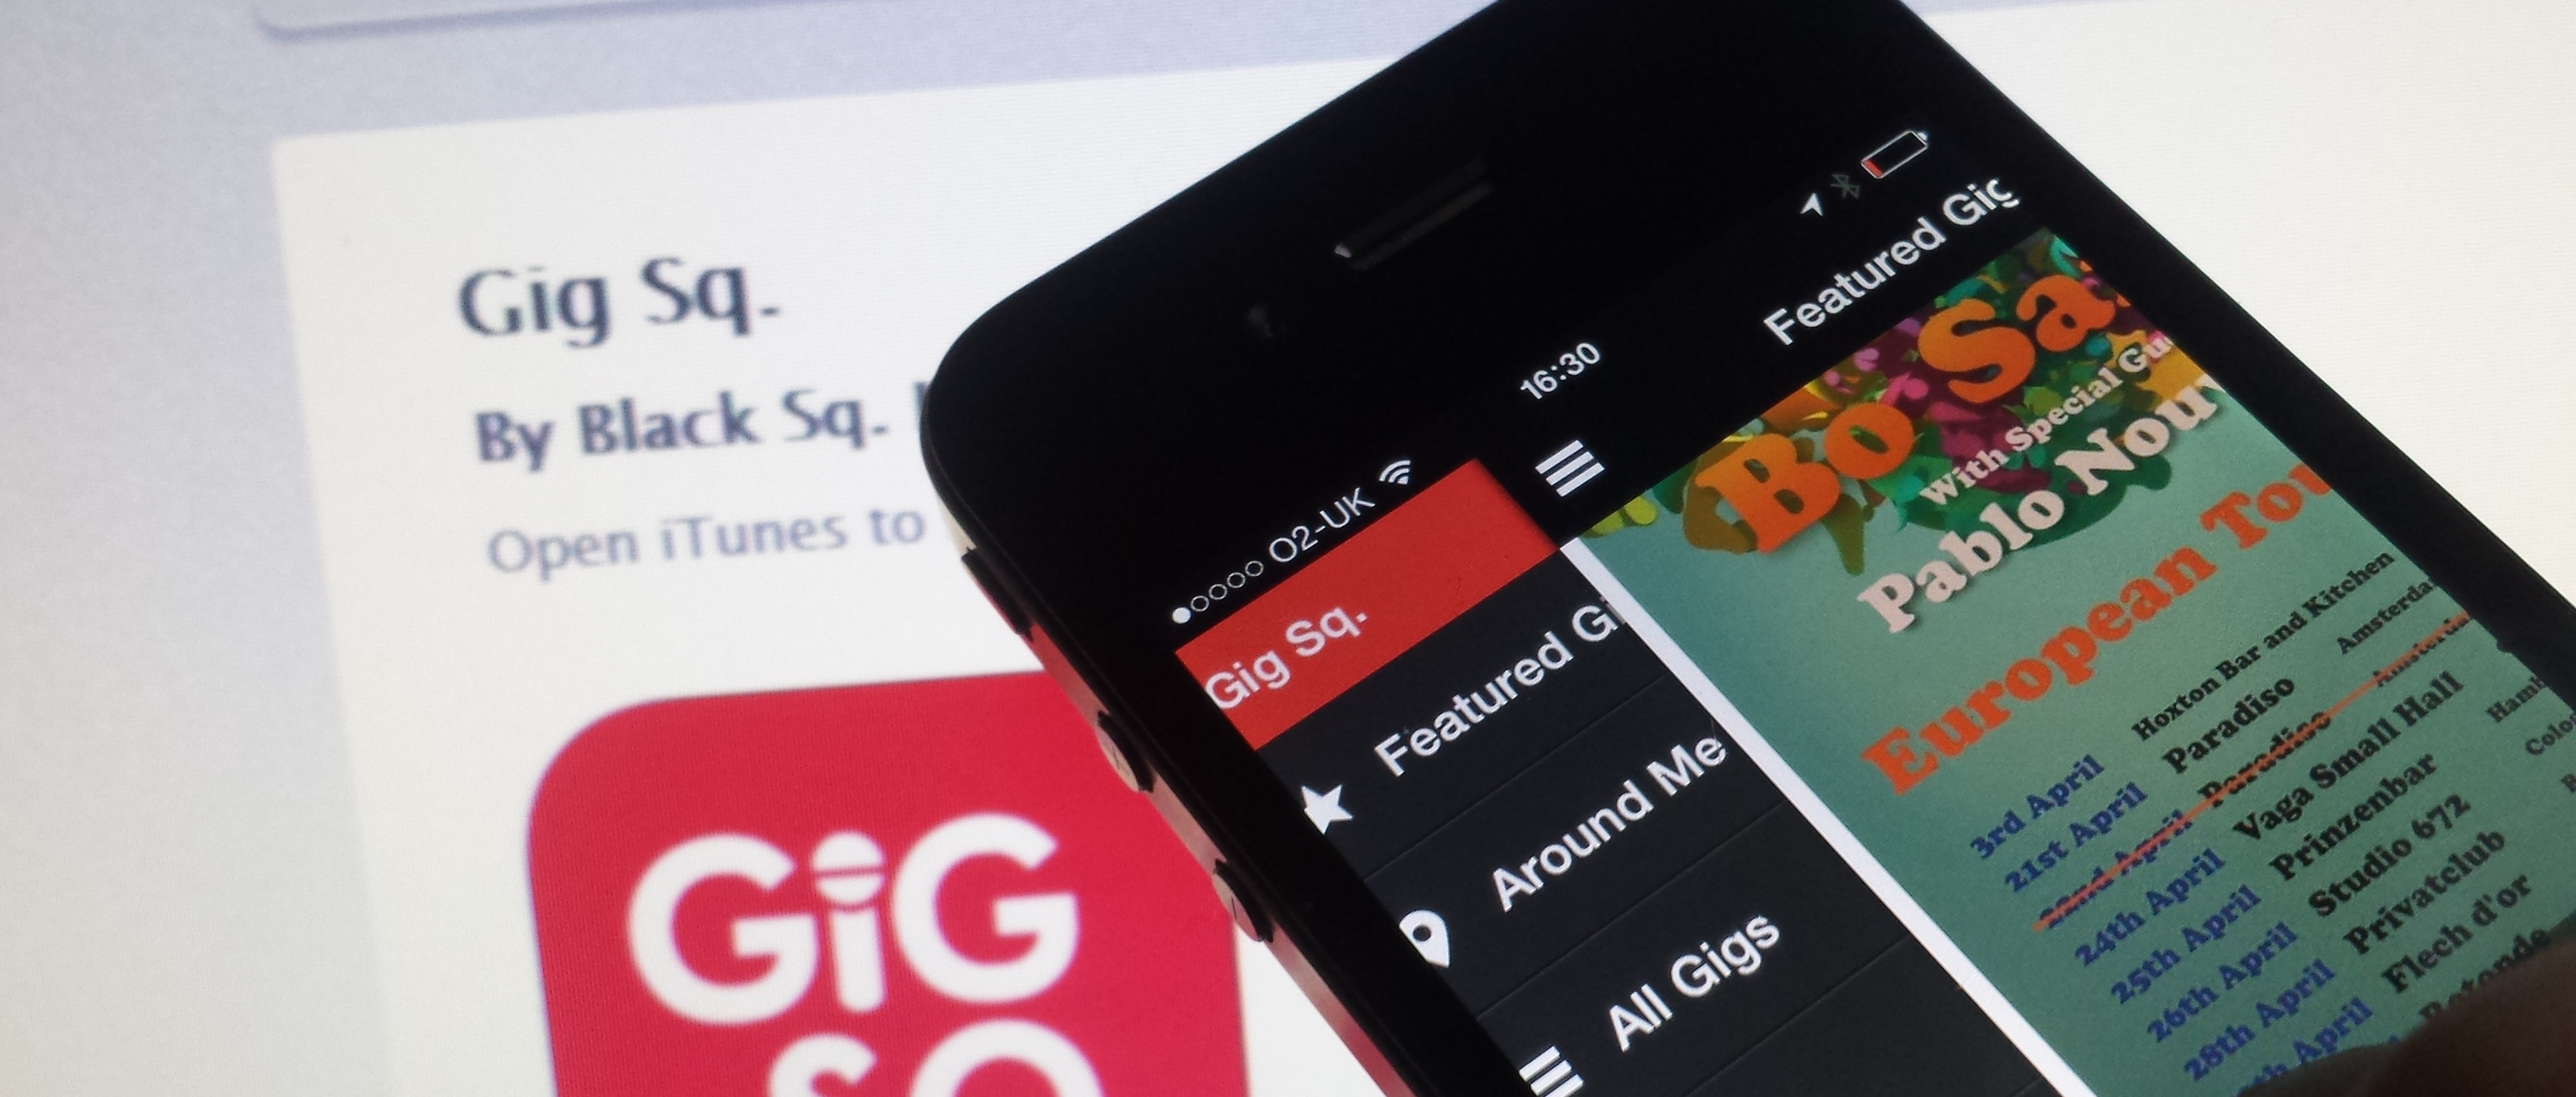 Gig Sq. Adds Mobile Ticketing to Live London Music App